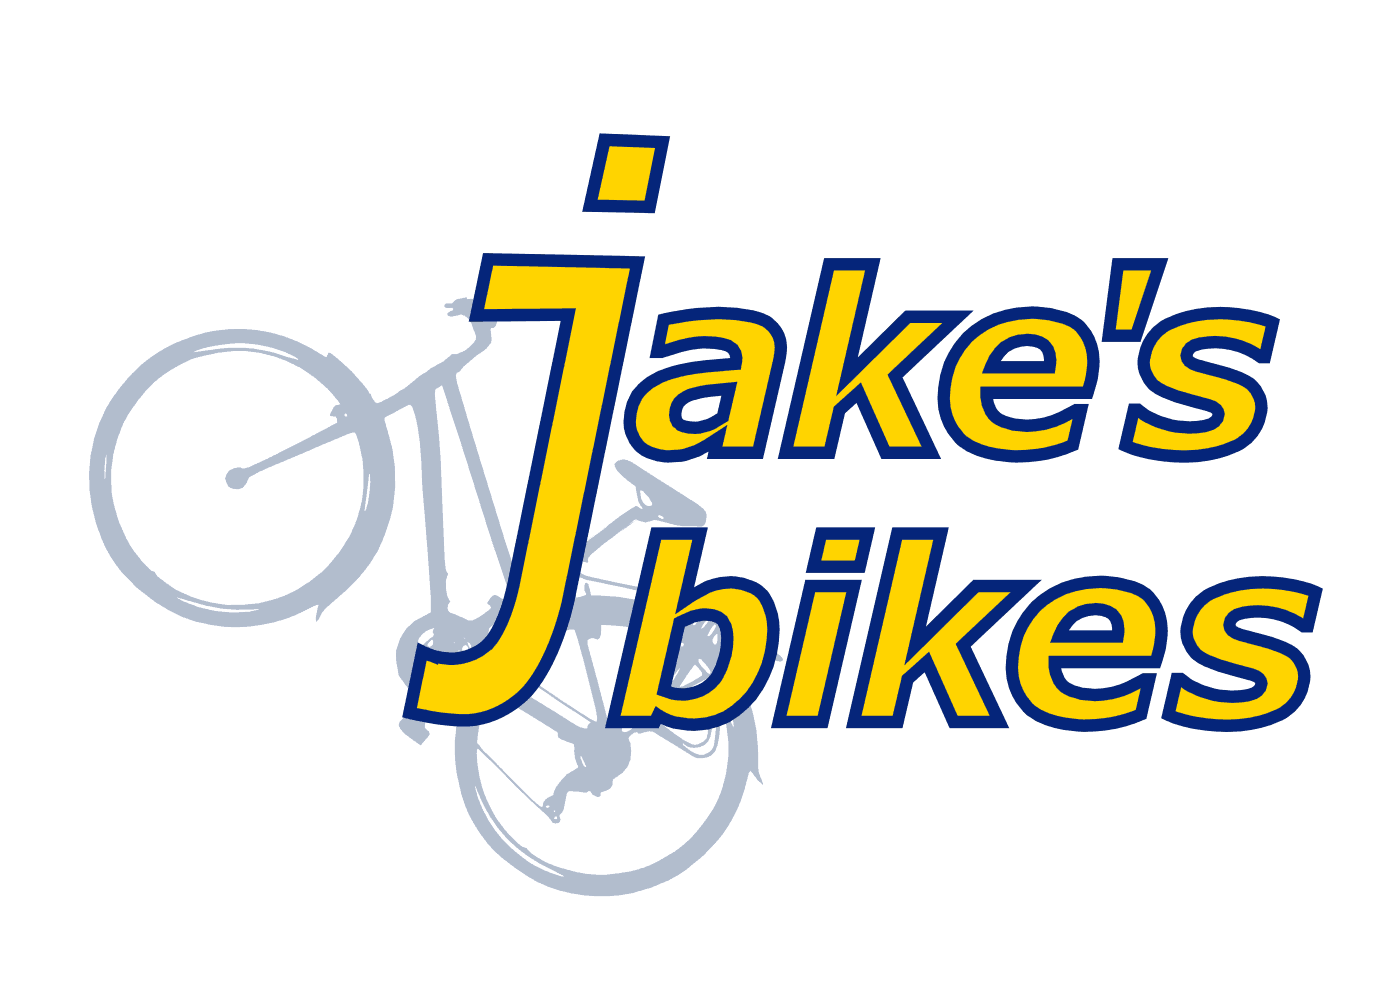 Jake's Bikes in Bristol